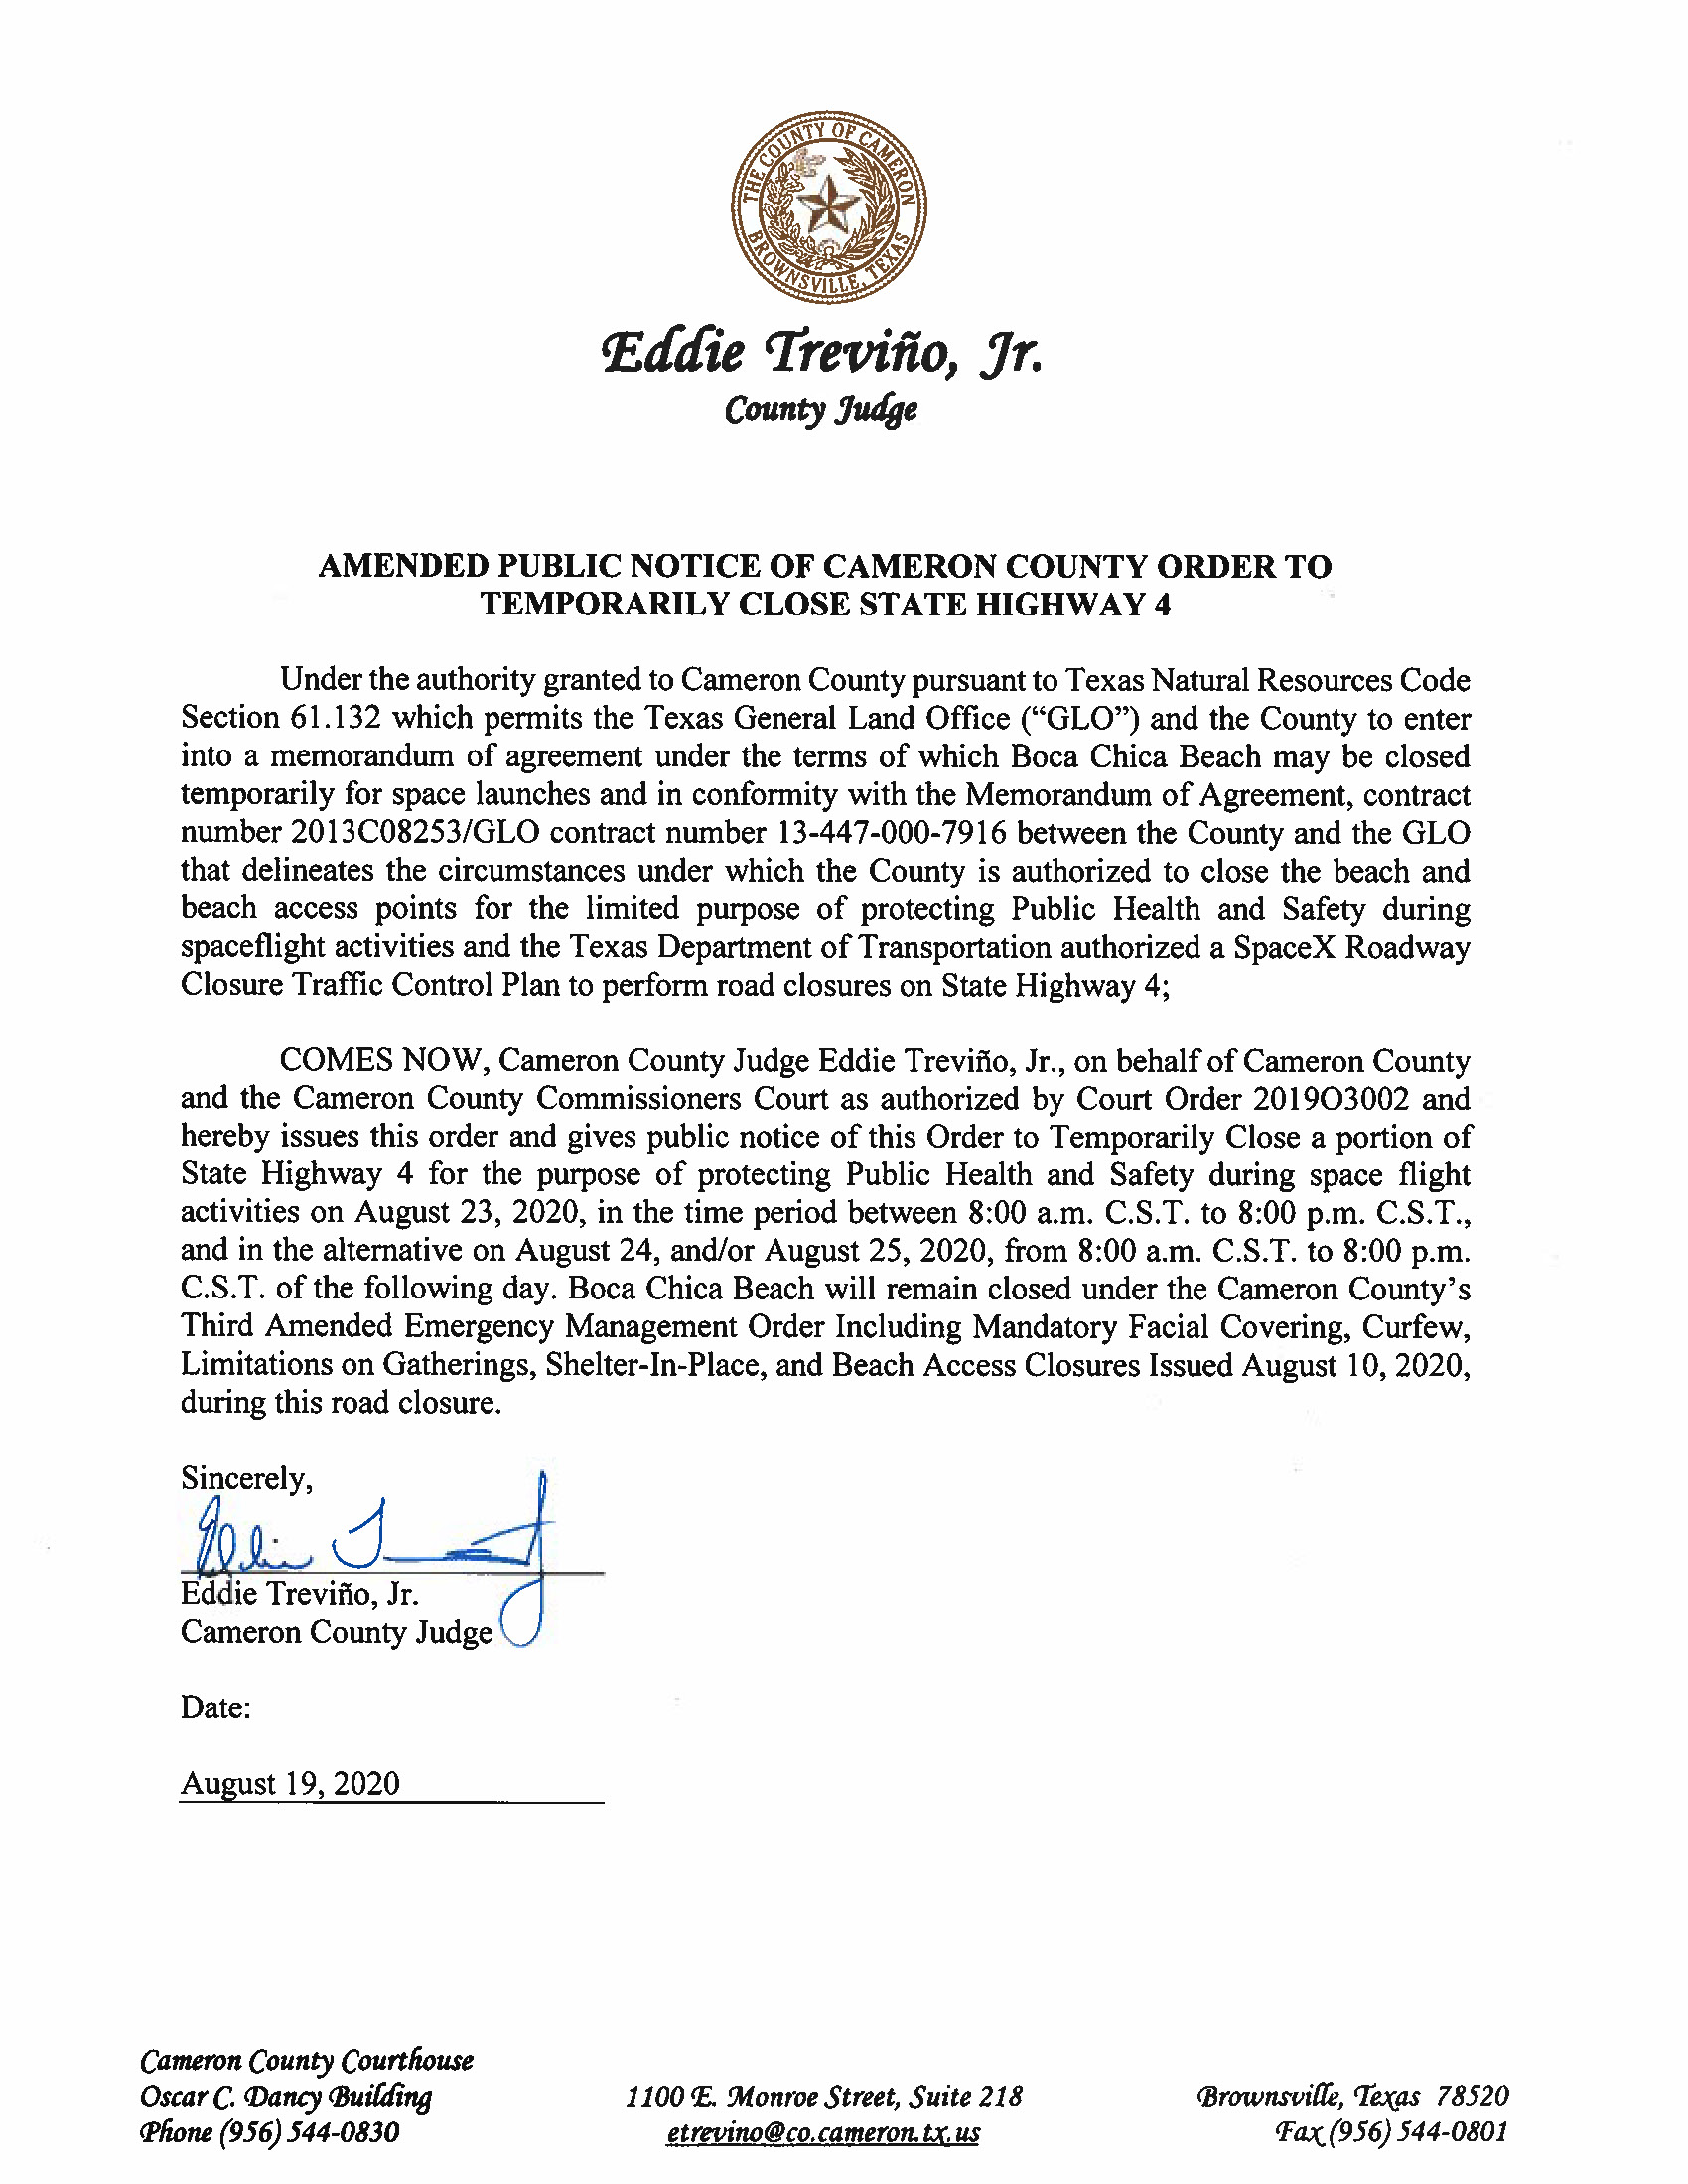 AMENDED PUBLIC NOTICE OF CAMERON COUNTY ORDER TO TEMP. ROAD CLOSURE. 08.23.20.docx